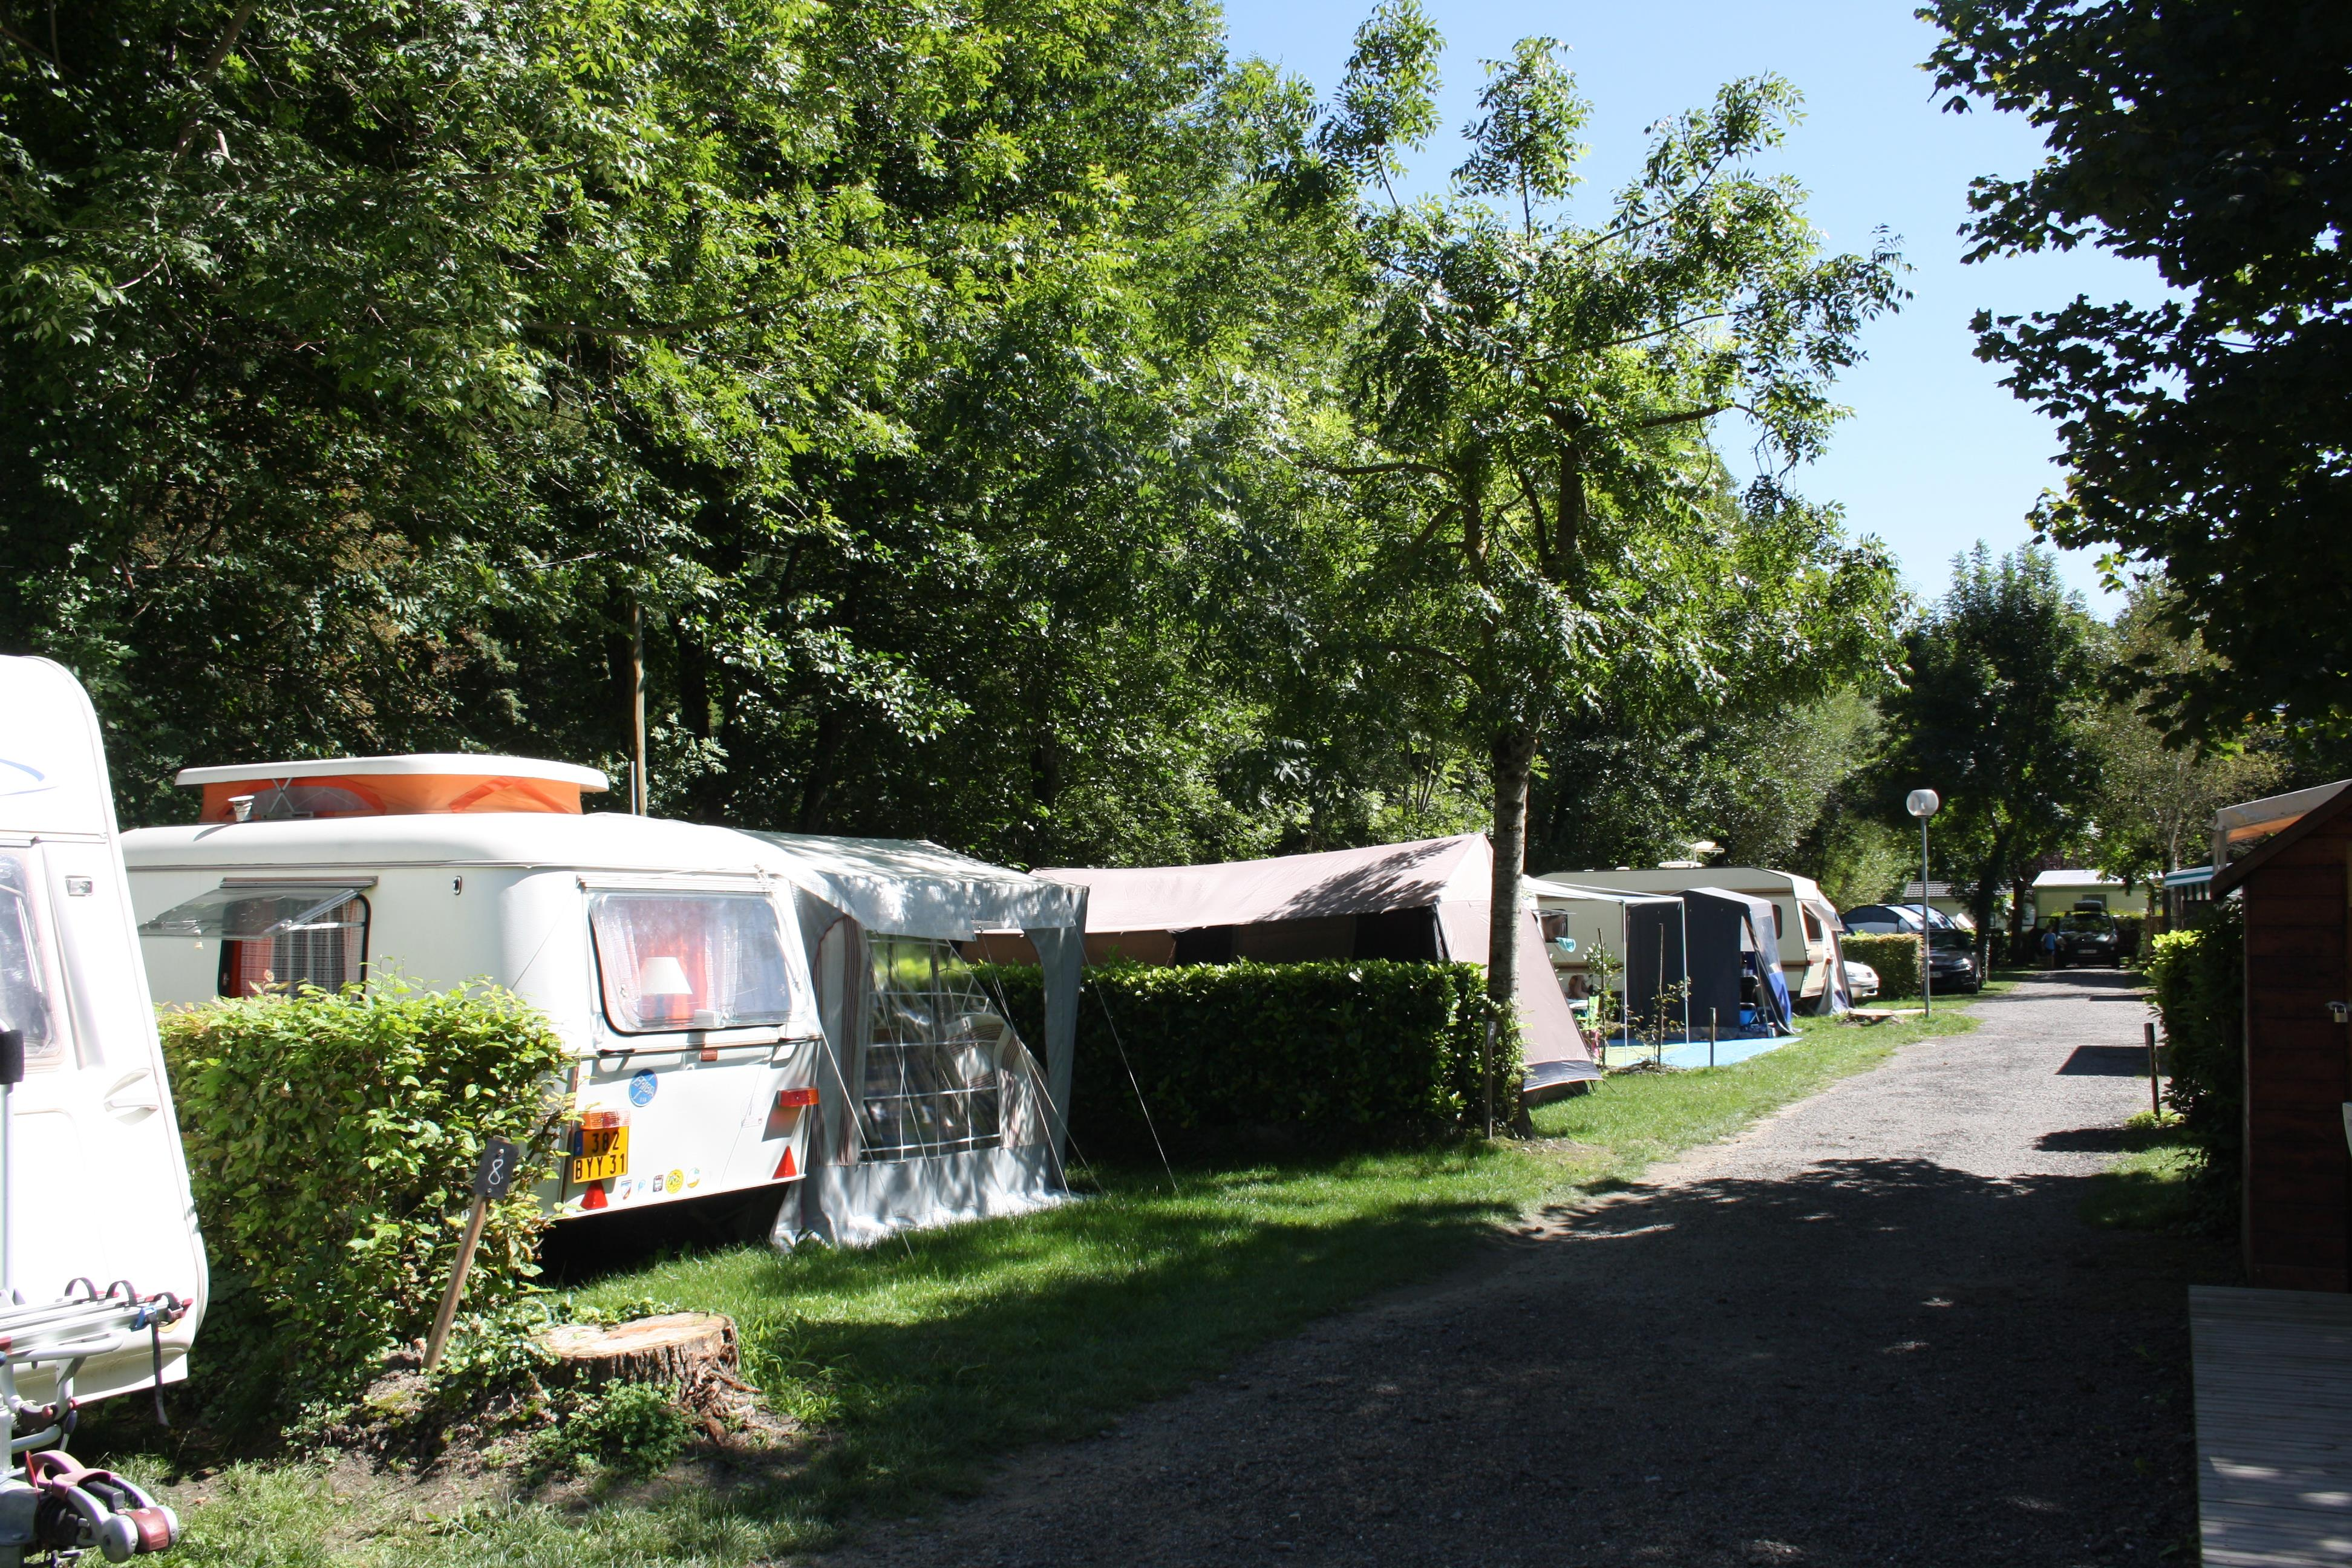 midi pyrnes 31110 bagneres de luchon 39 emplacements 36 locations camping le pyreneen